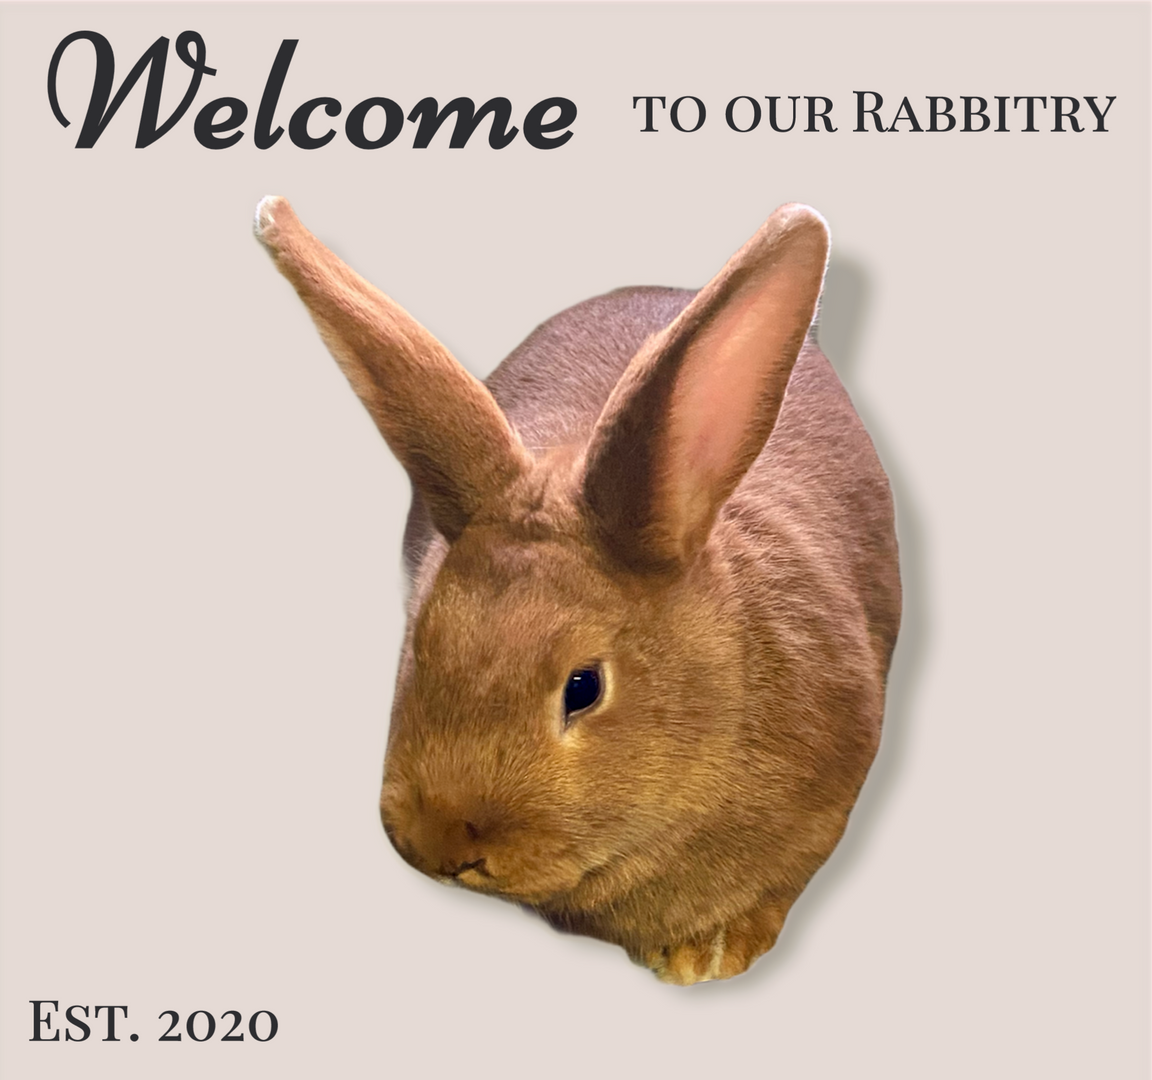 Welcome from Lucille